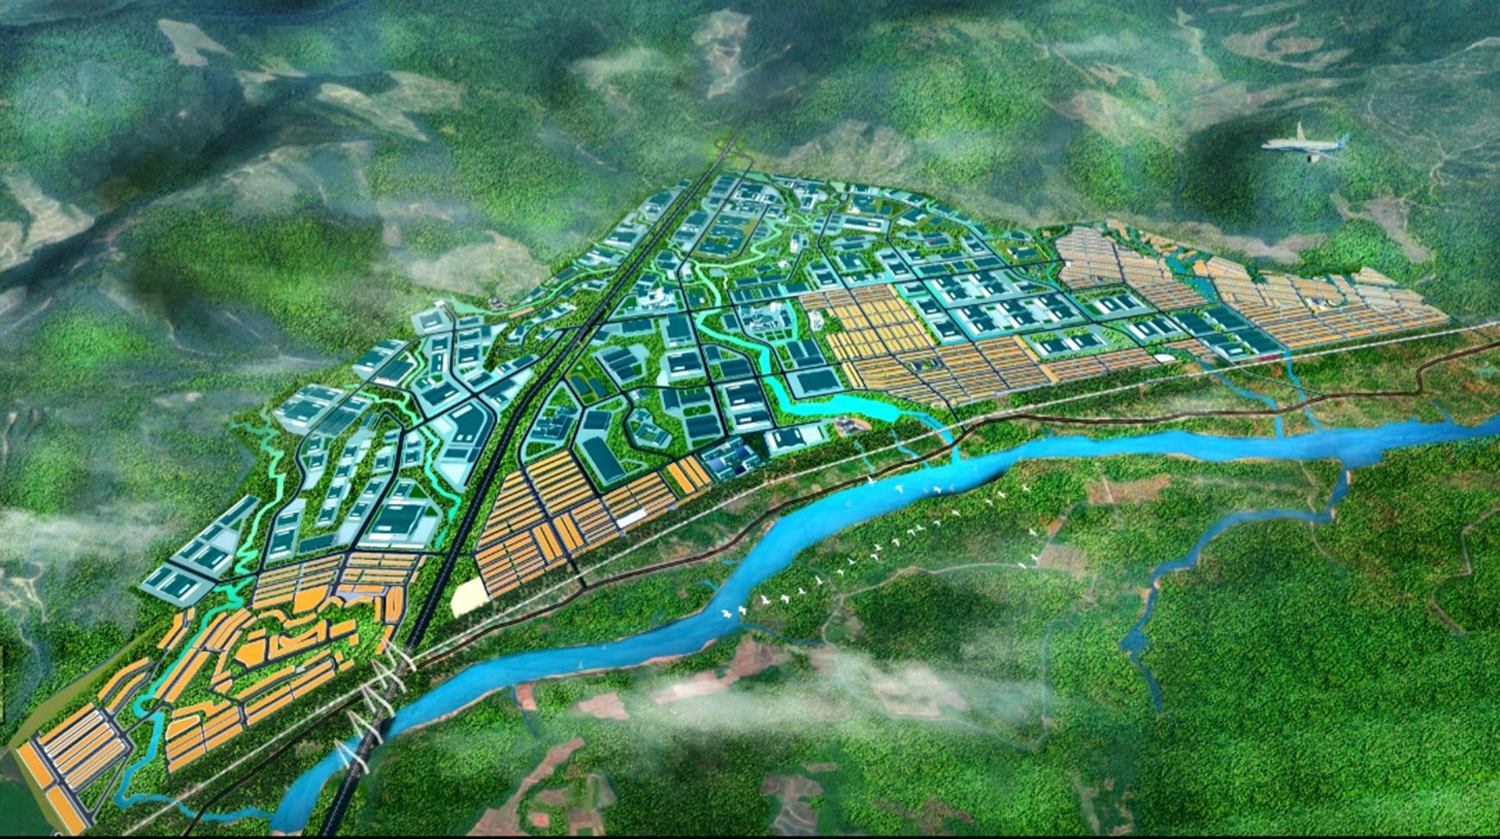 Vietnam's central province welcomes high-tech investment in the 4.0 era